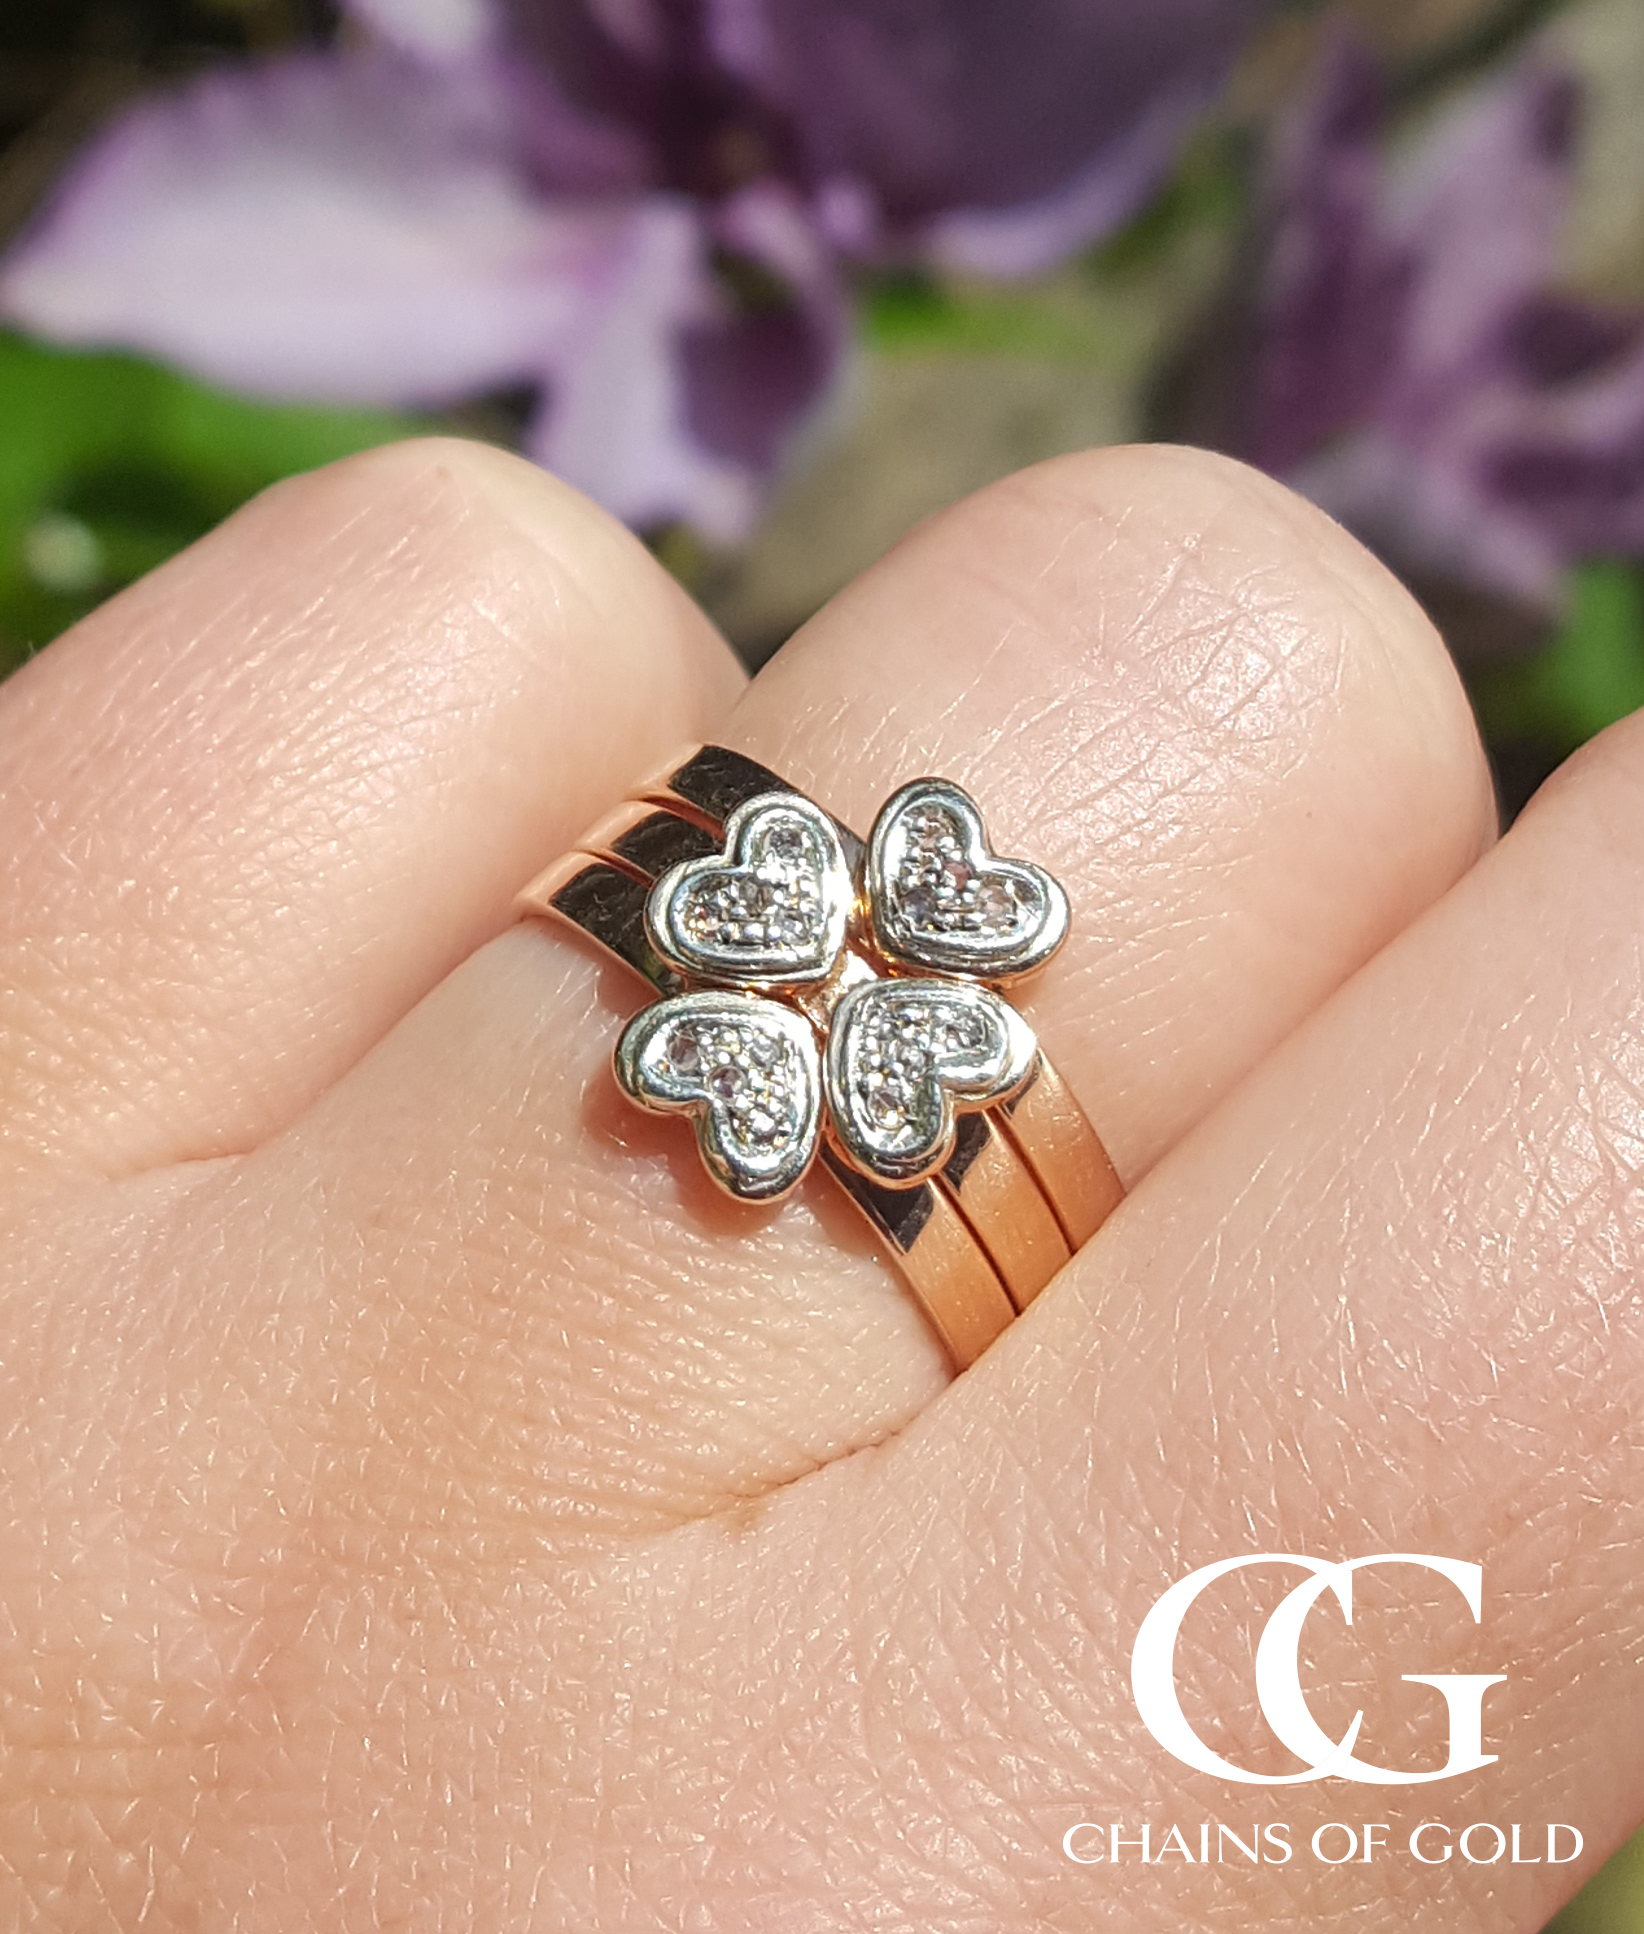 9Ct Rose Gold Diamond Heart Four Leaf Clover Ring Stack Intended For Most Popular Dangling Four Leaf Clover Rings (View 2 of 25)